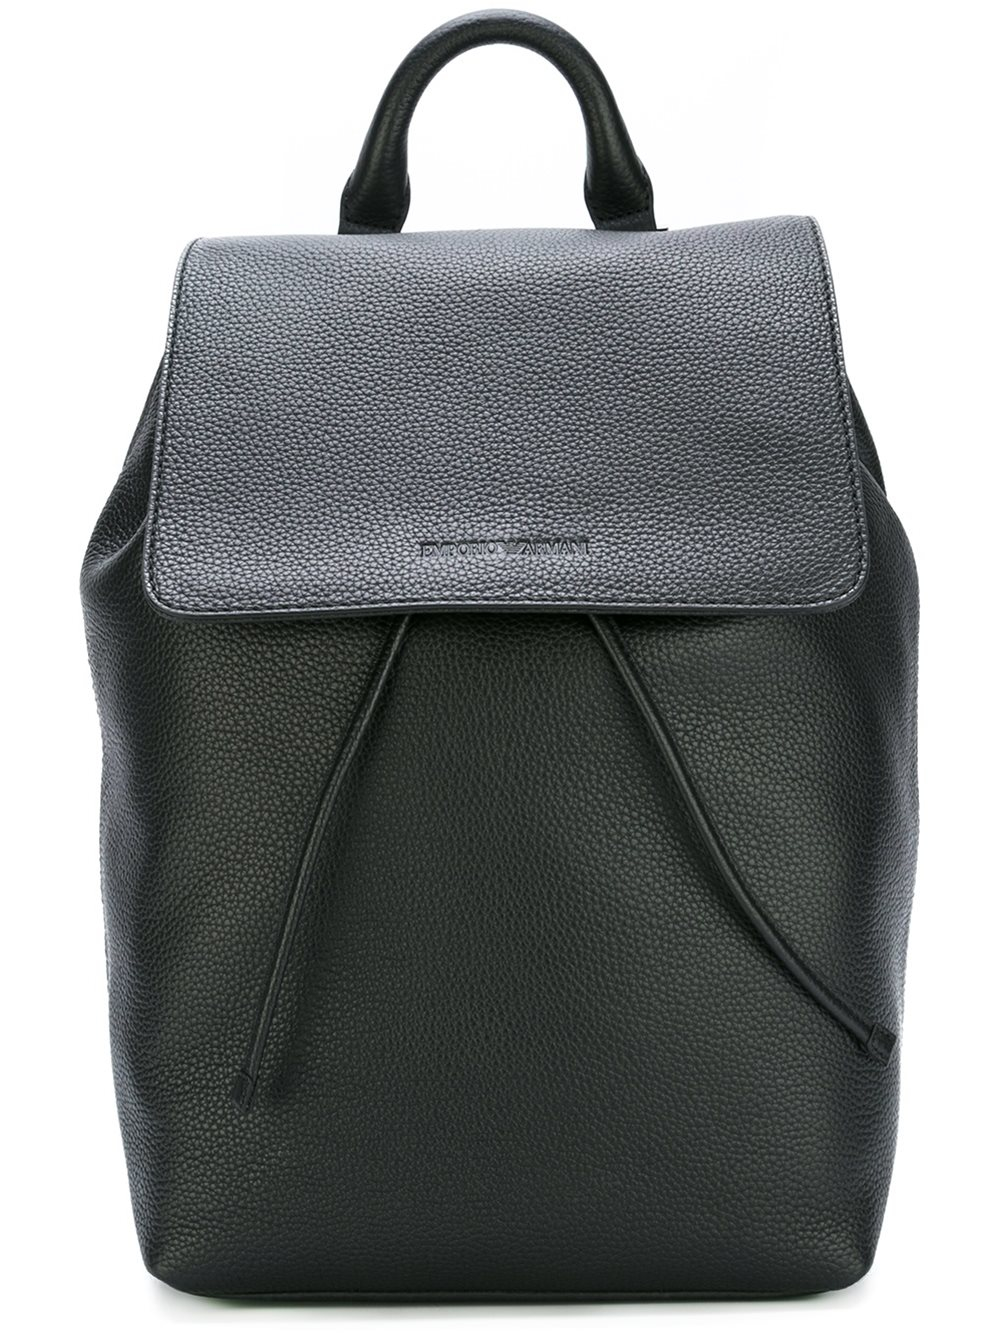 0f0a915a154d Emporio Armani Grained Leather Backpack for Men - Lyst